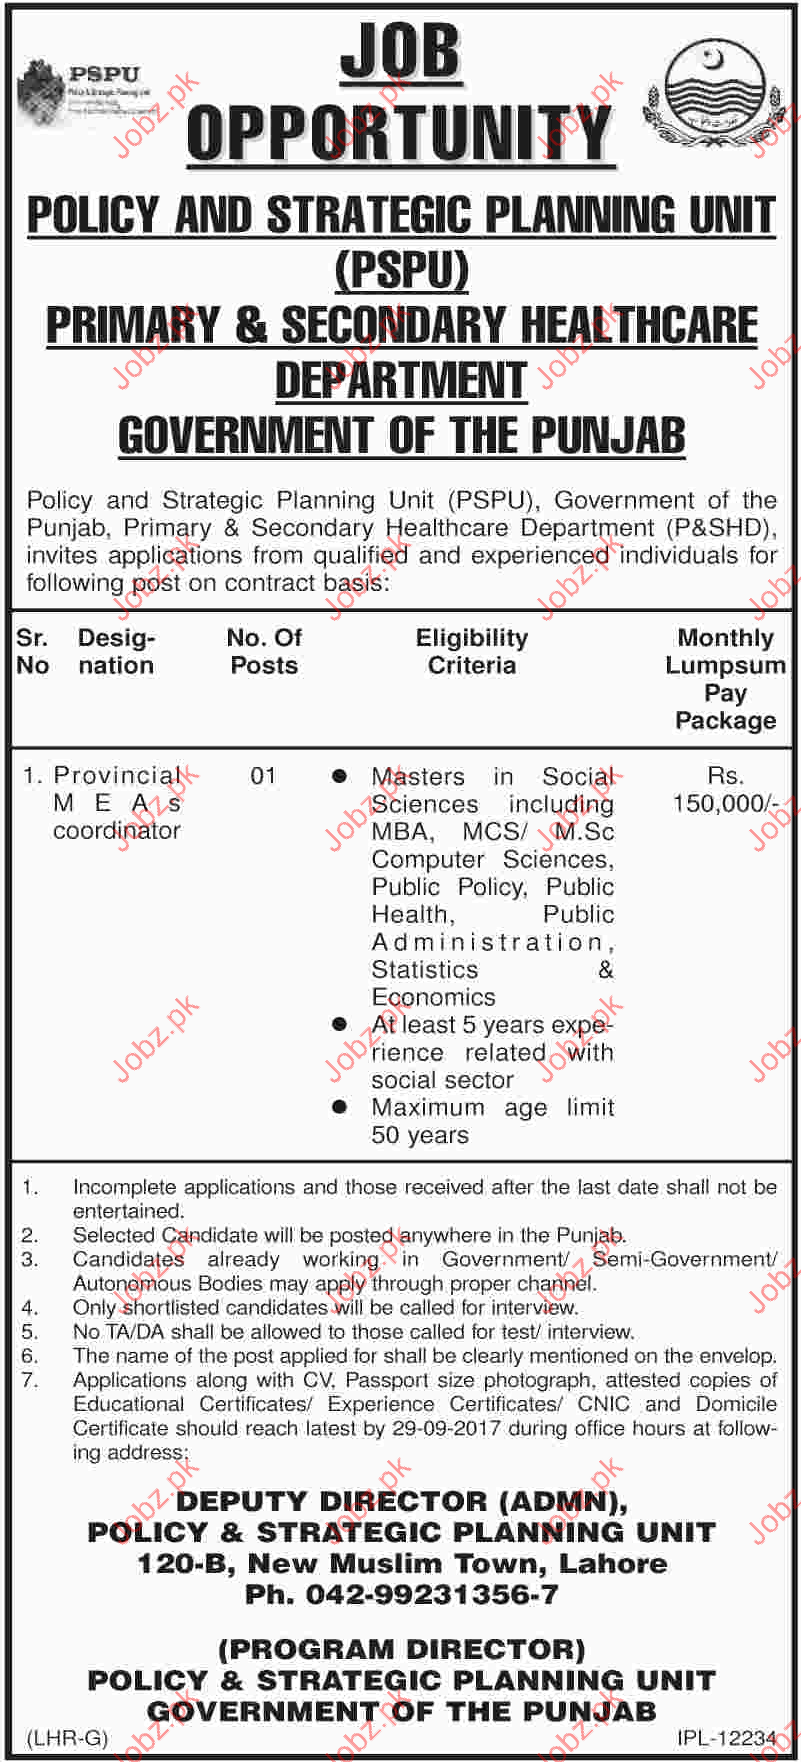 CoordinatorJobs In Primary & Secondary HealthCare Department